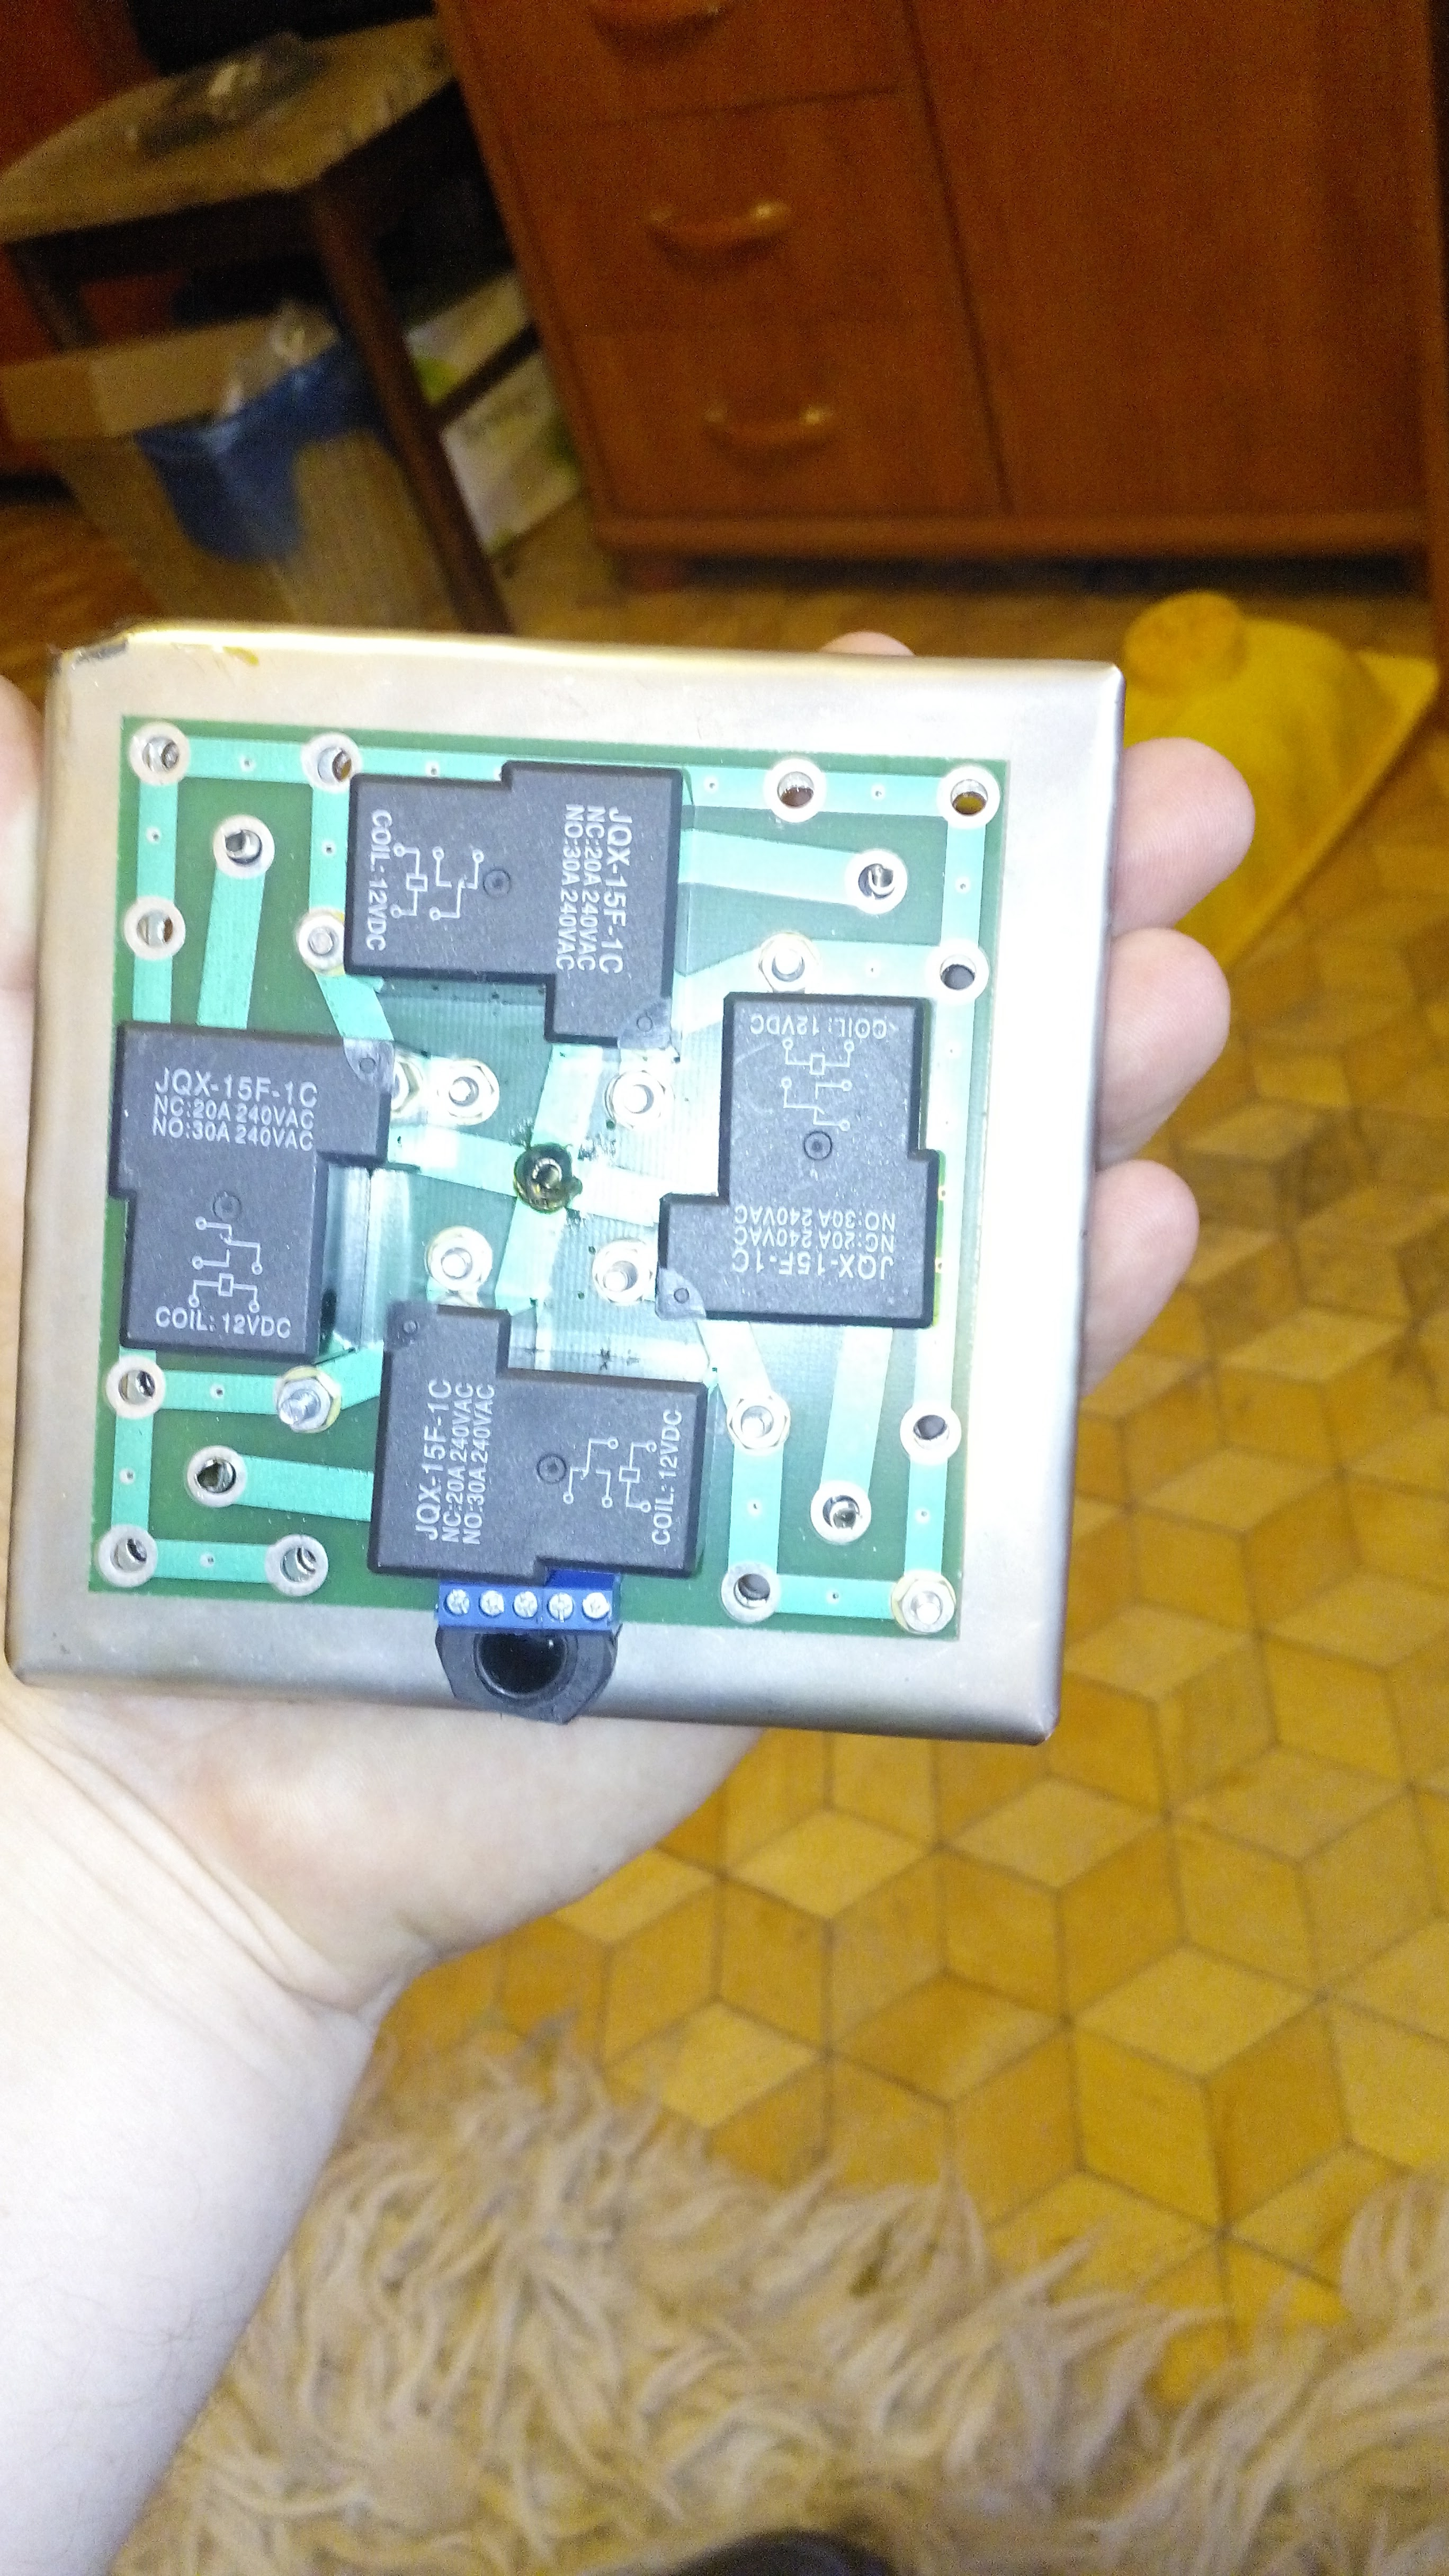 4 ant switch from SQ7OVV